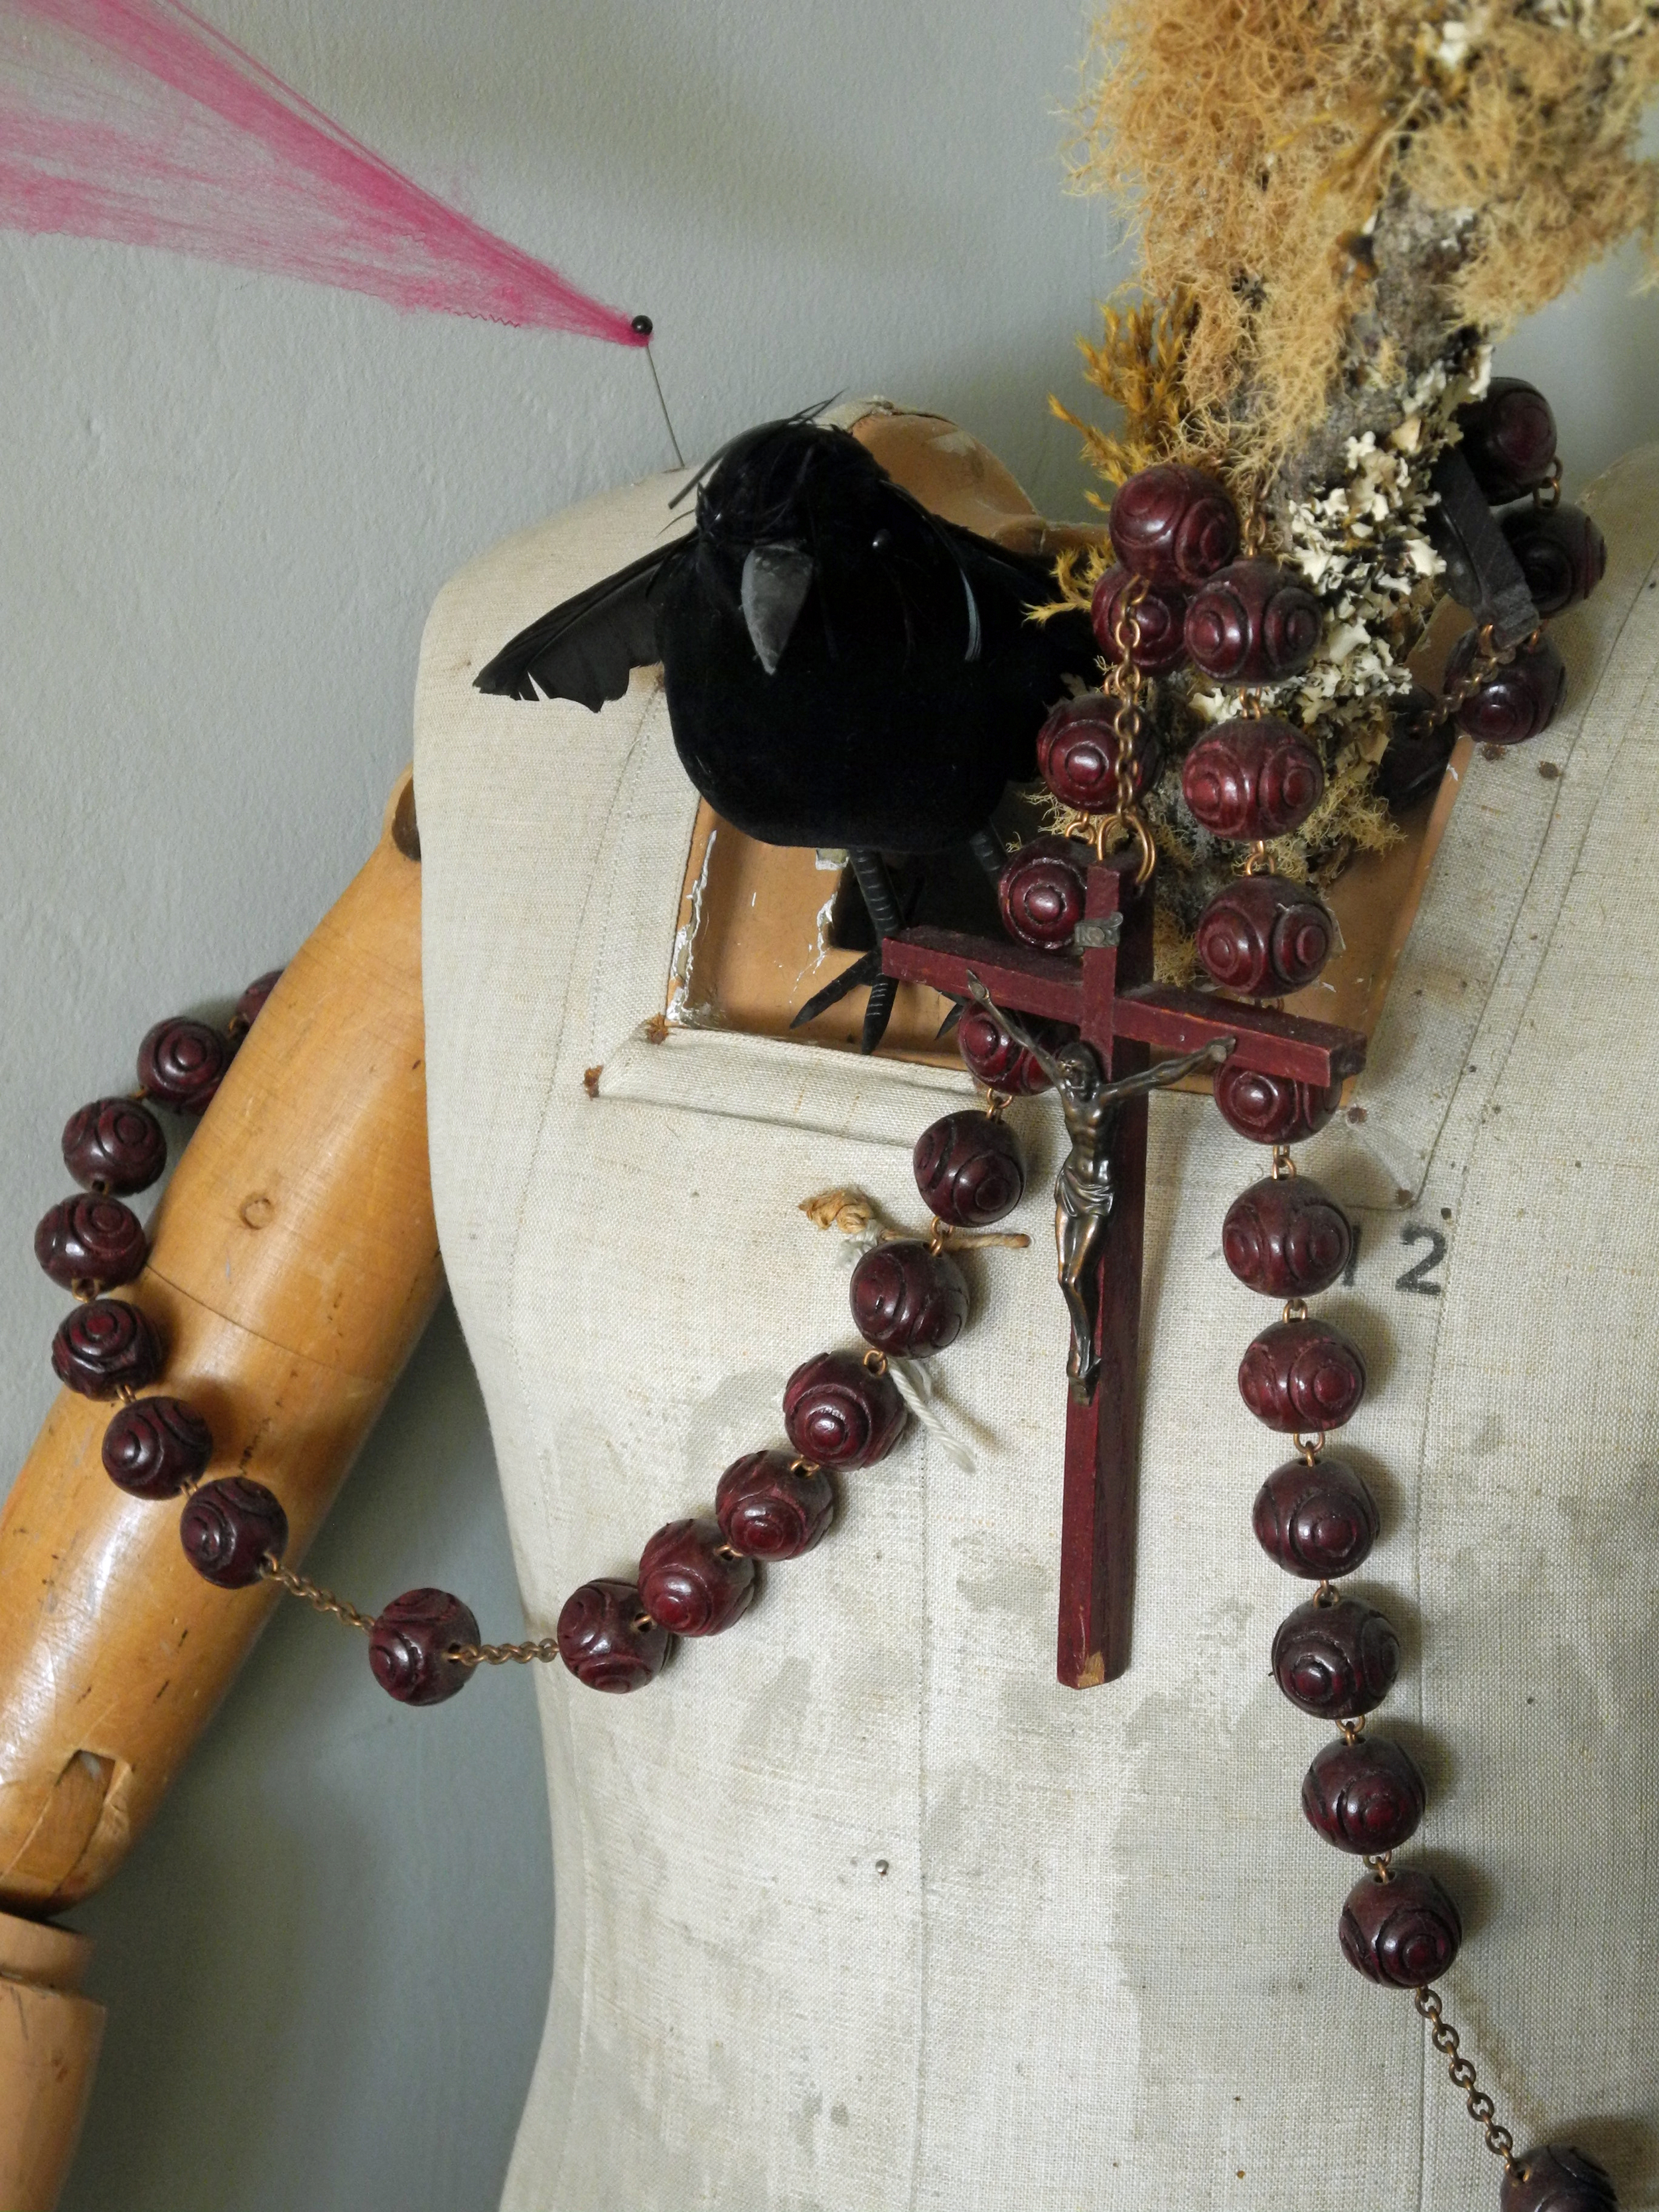 An antique French mannequin turned creepy with a rosary, crow and moss.